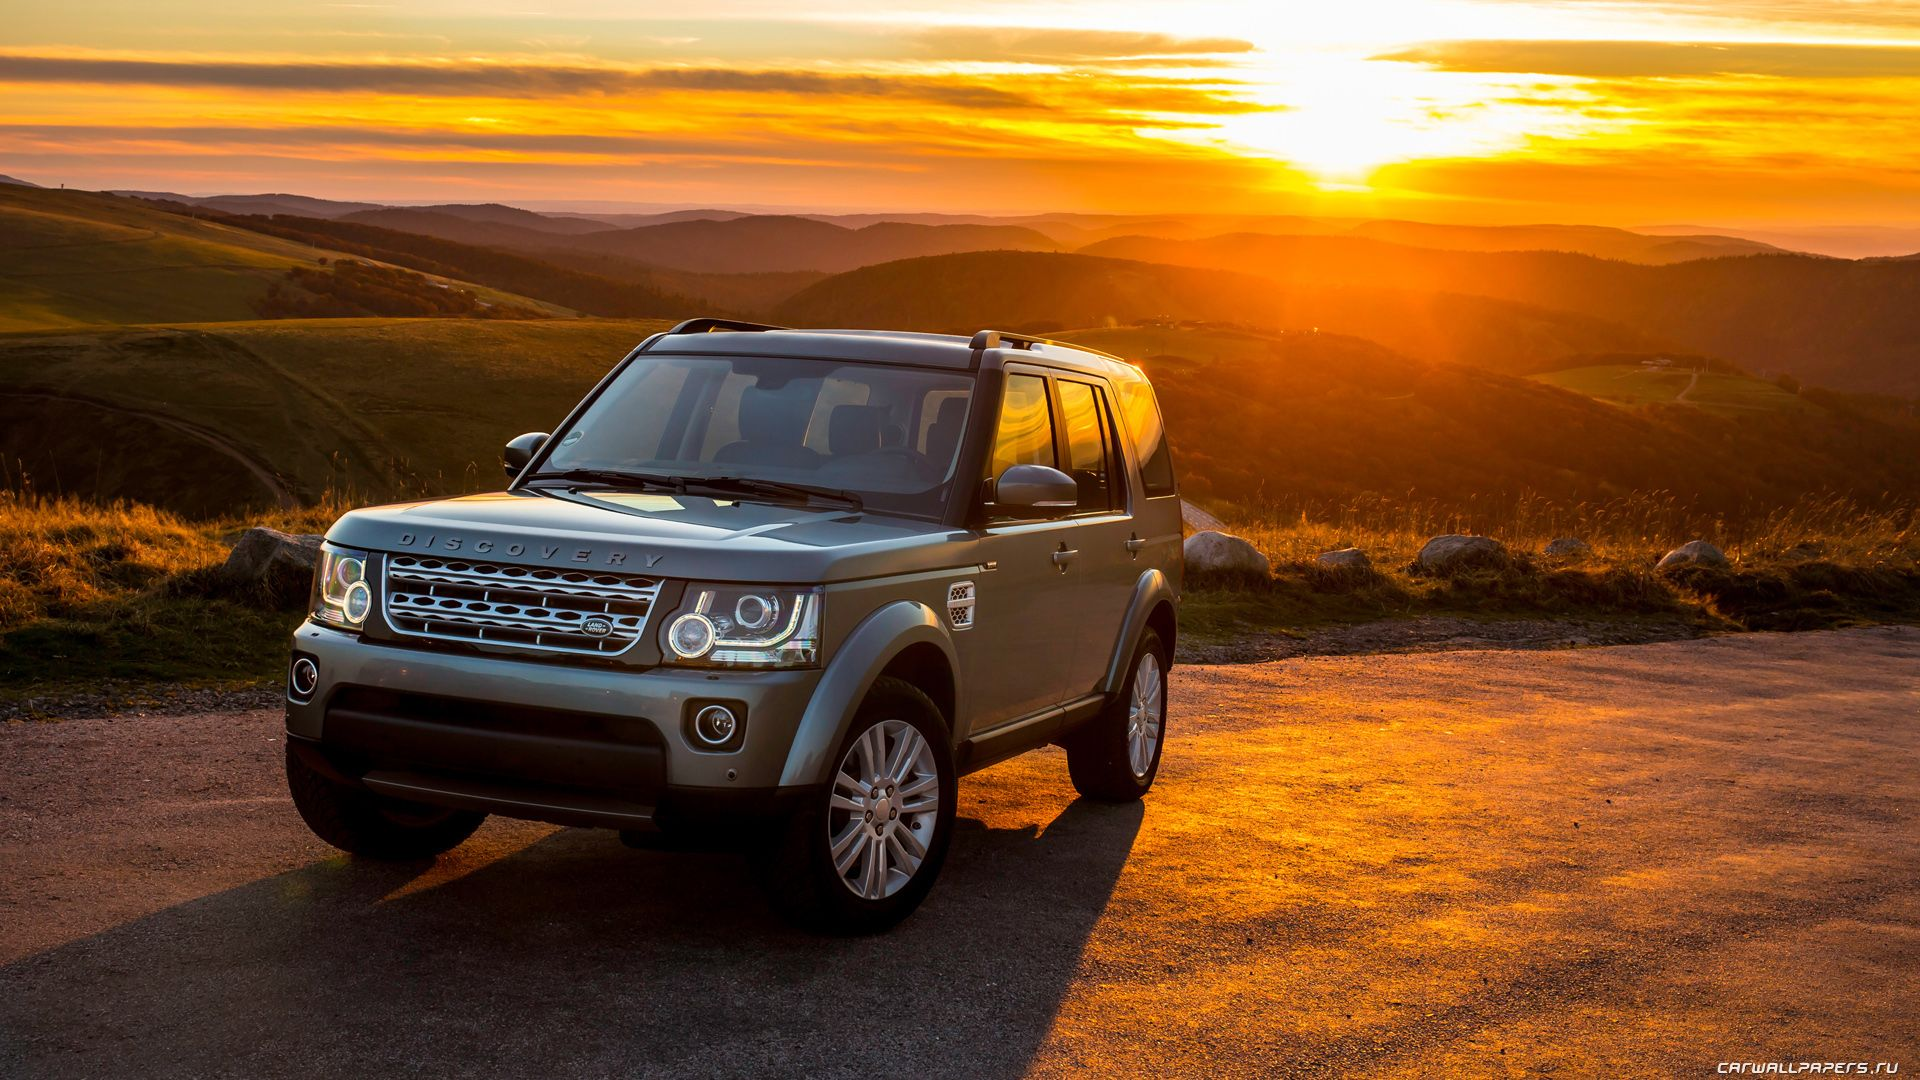 Land rover discovery 4 scv6 hse 2014 1920x1080